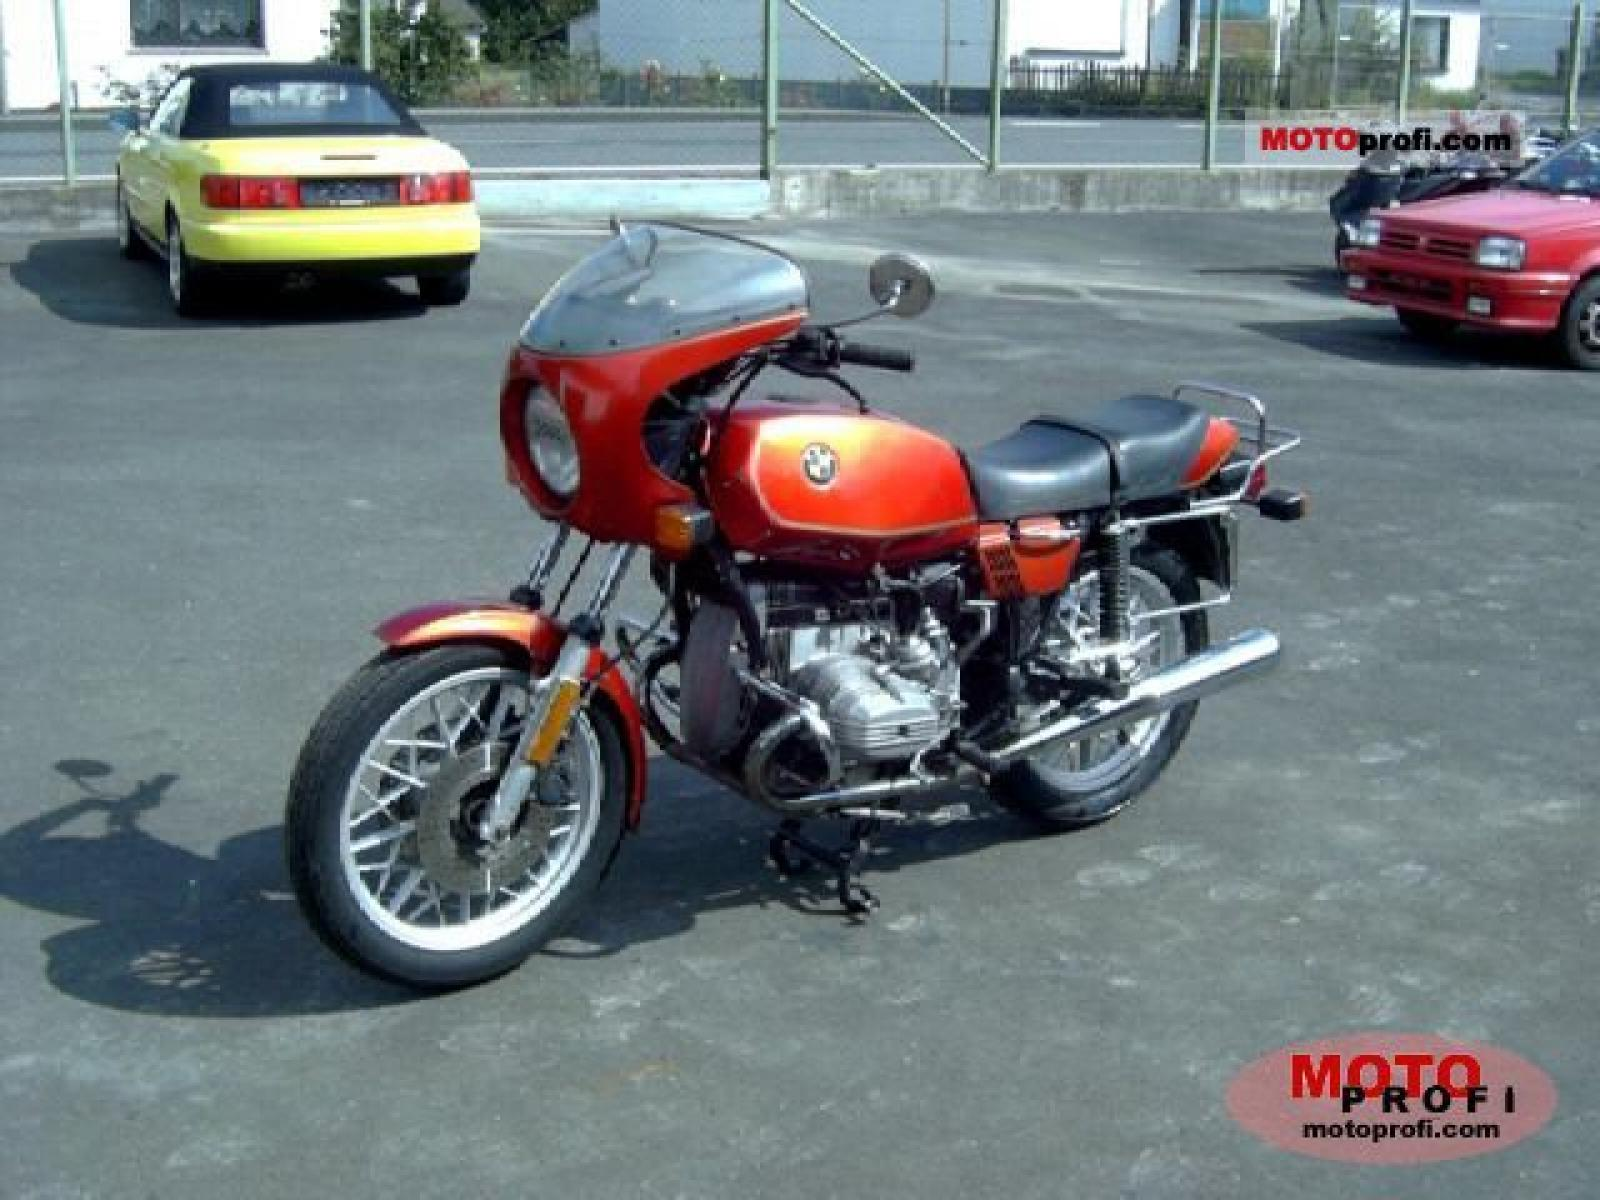 BMW R45 (reduced effect) 1985 images #77162